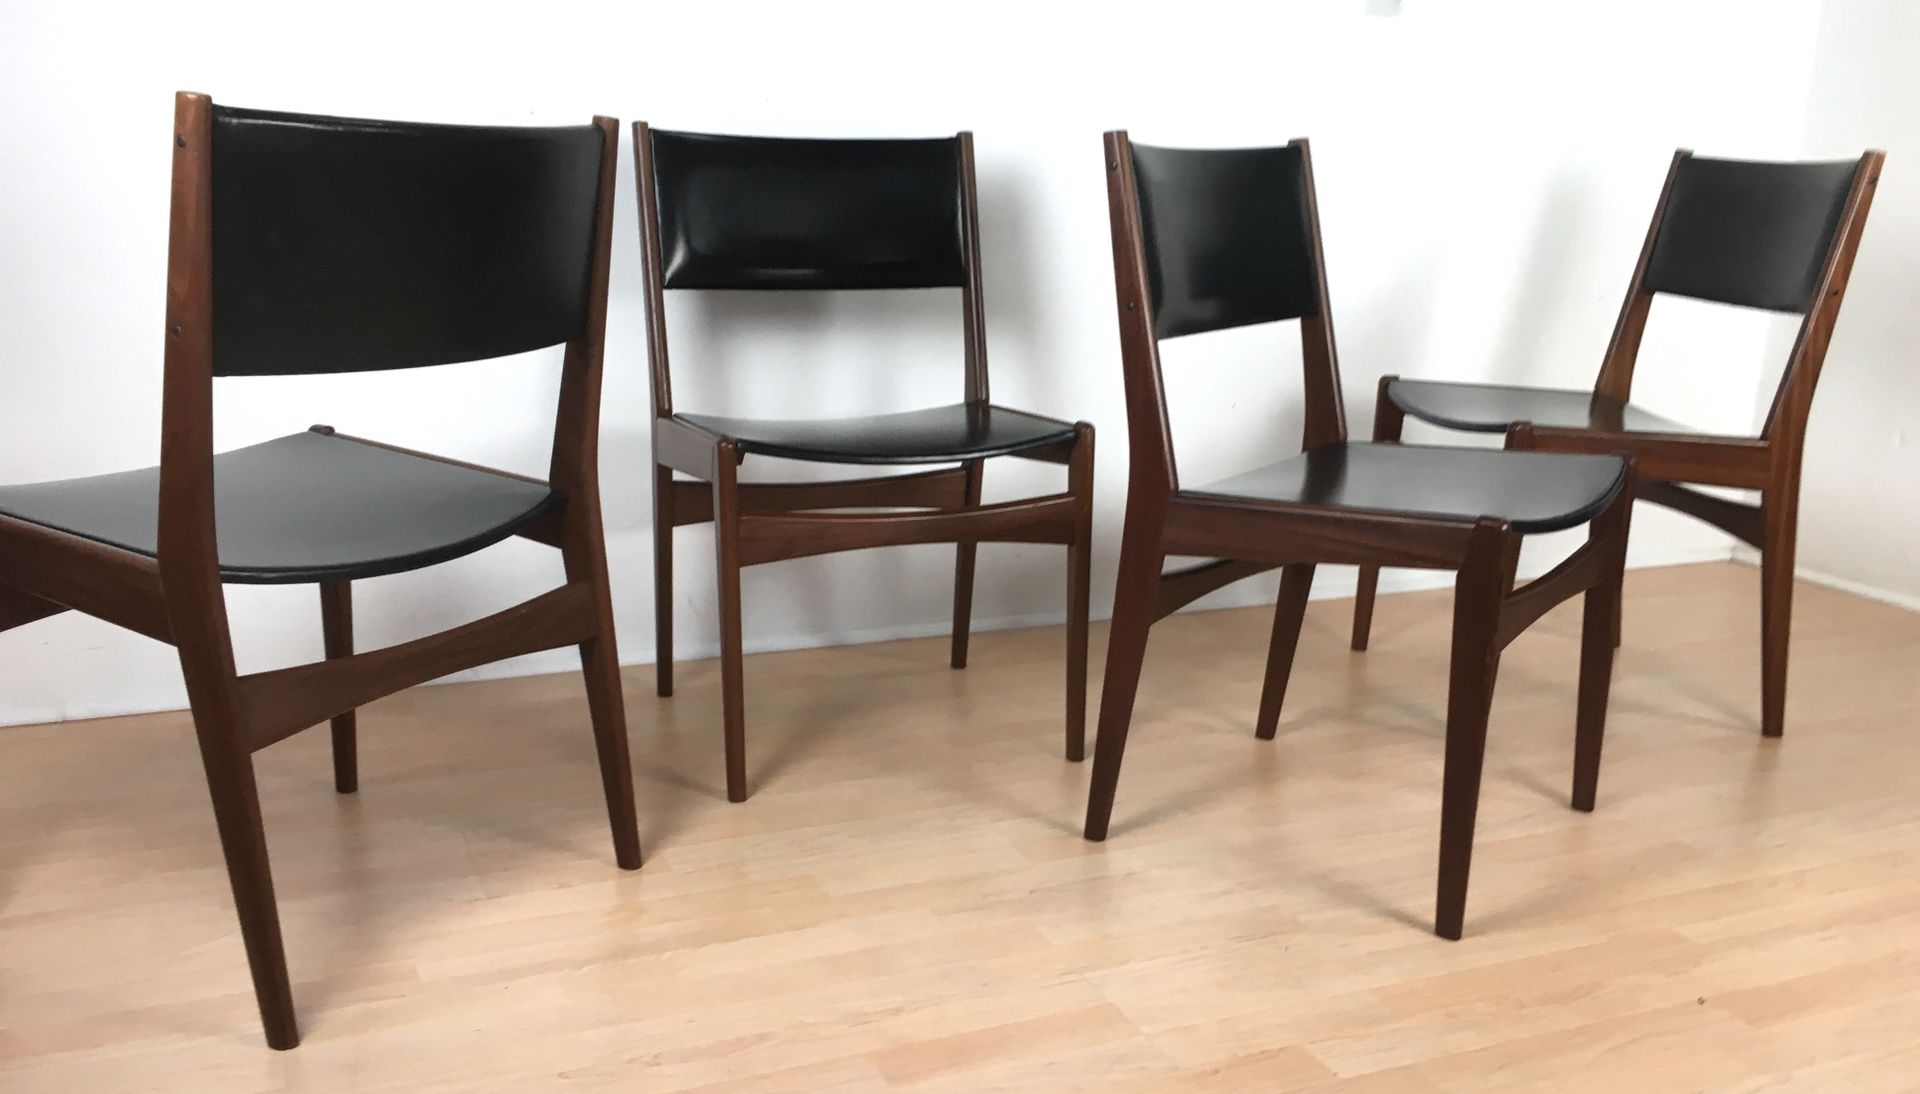 Danish Teak Chairs From Frem Røjle, 1960s, Set Of 4